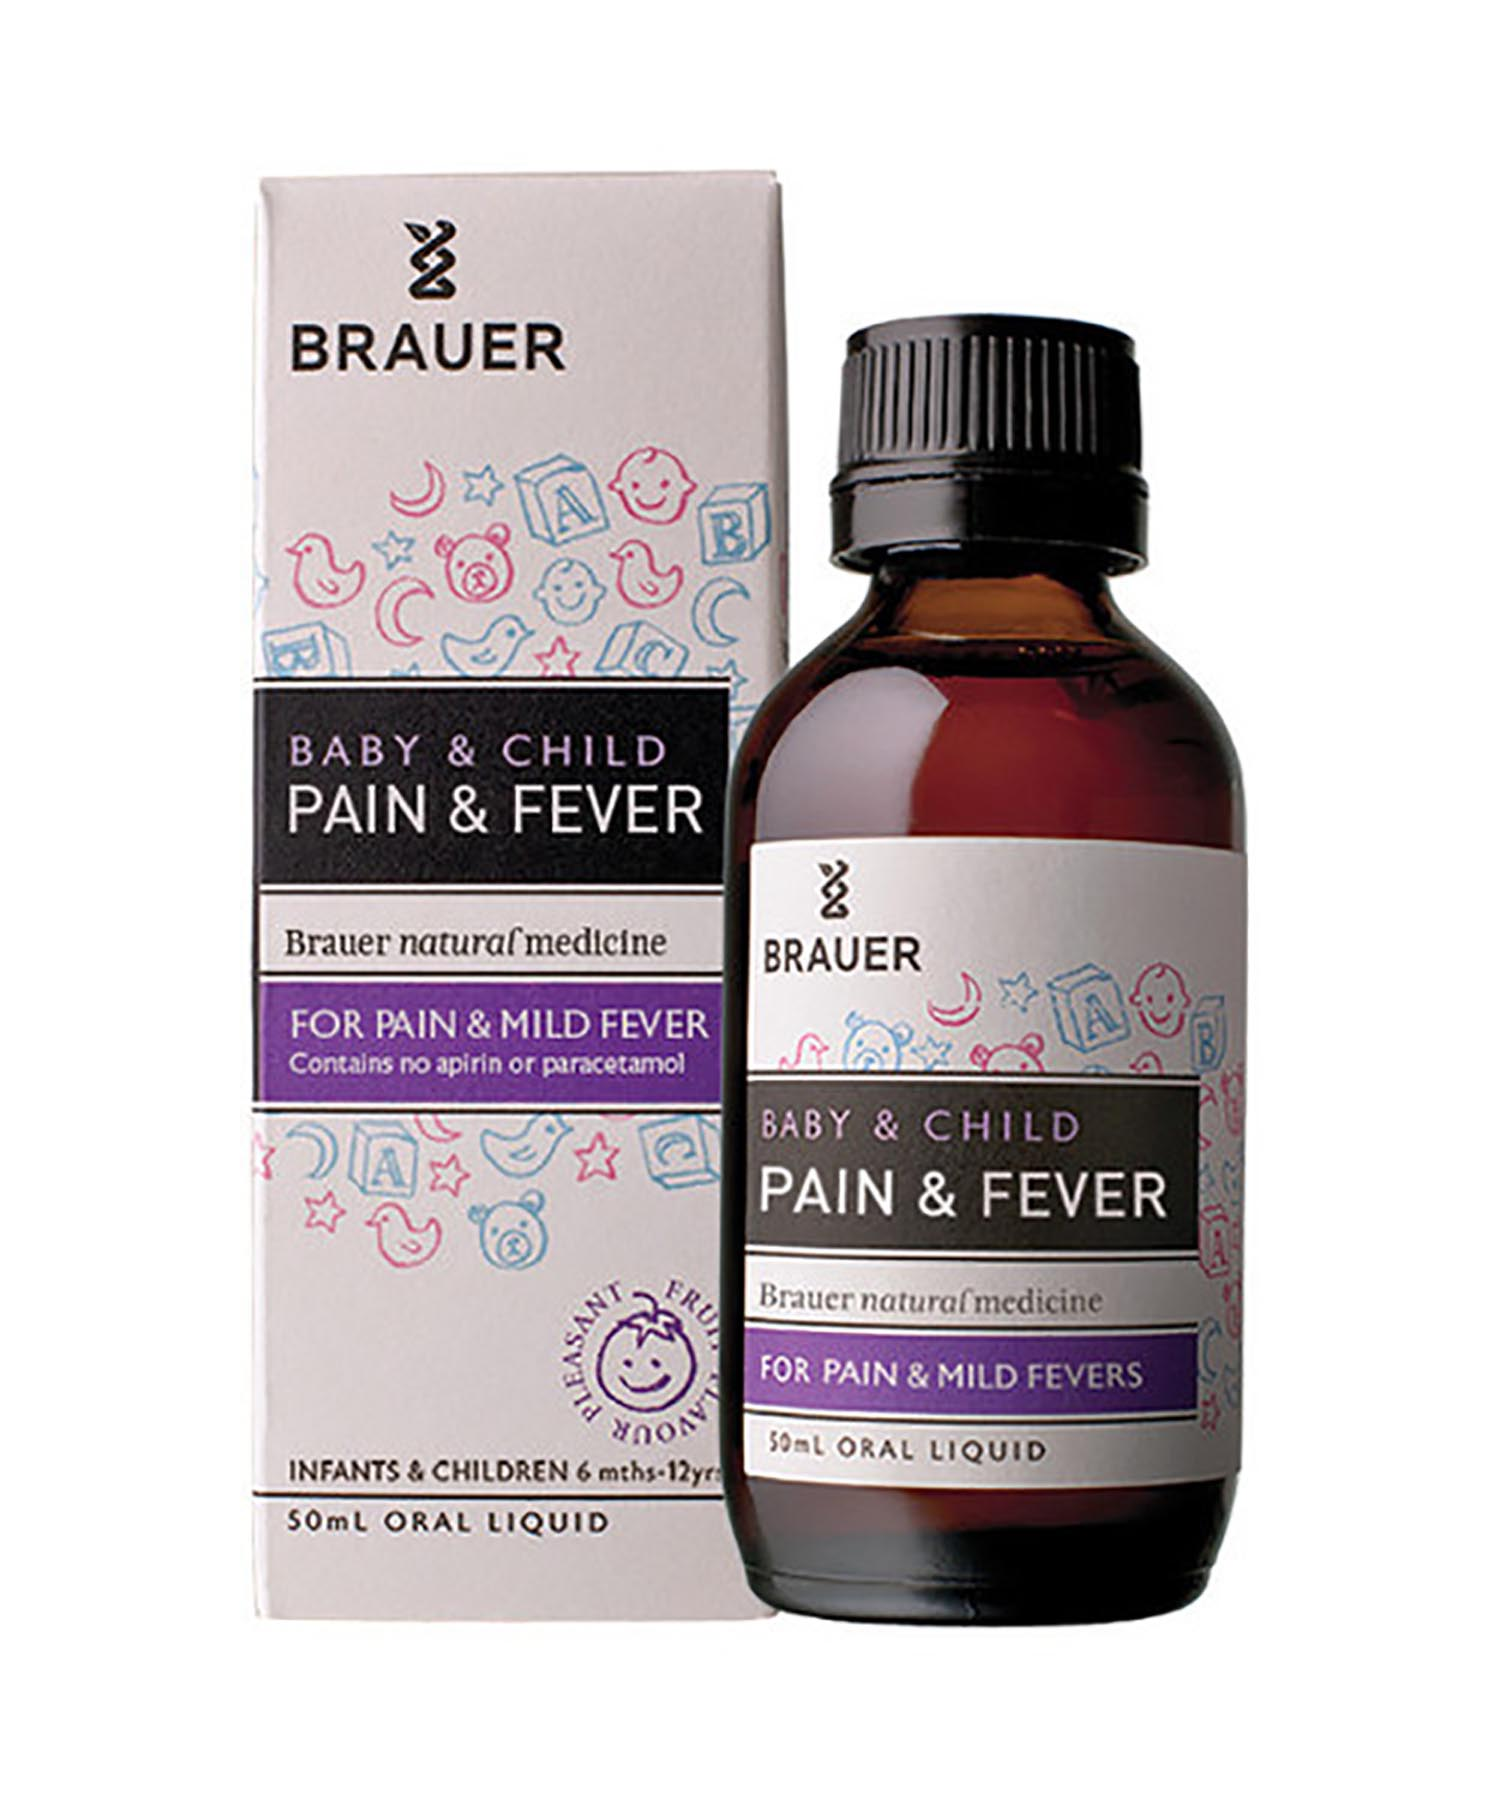 Baby & Child Pain & Fever, brauer